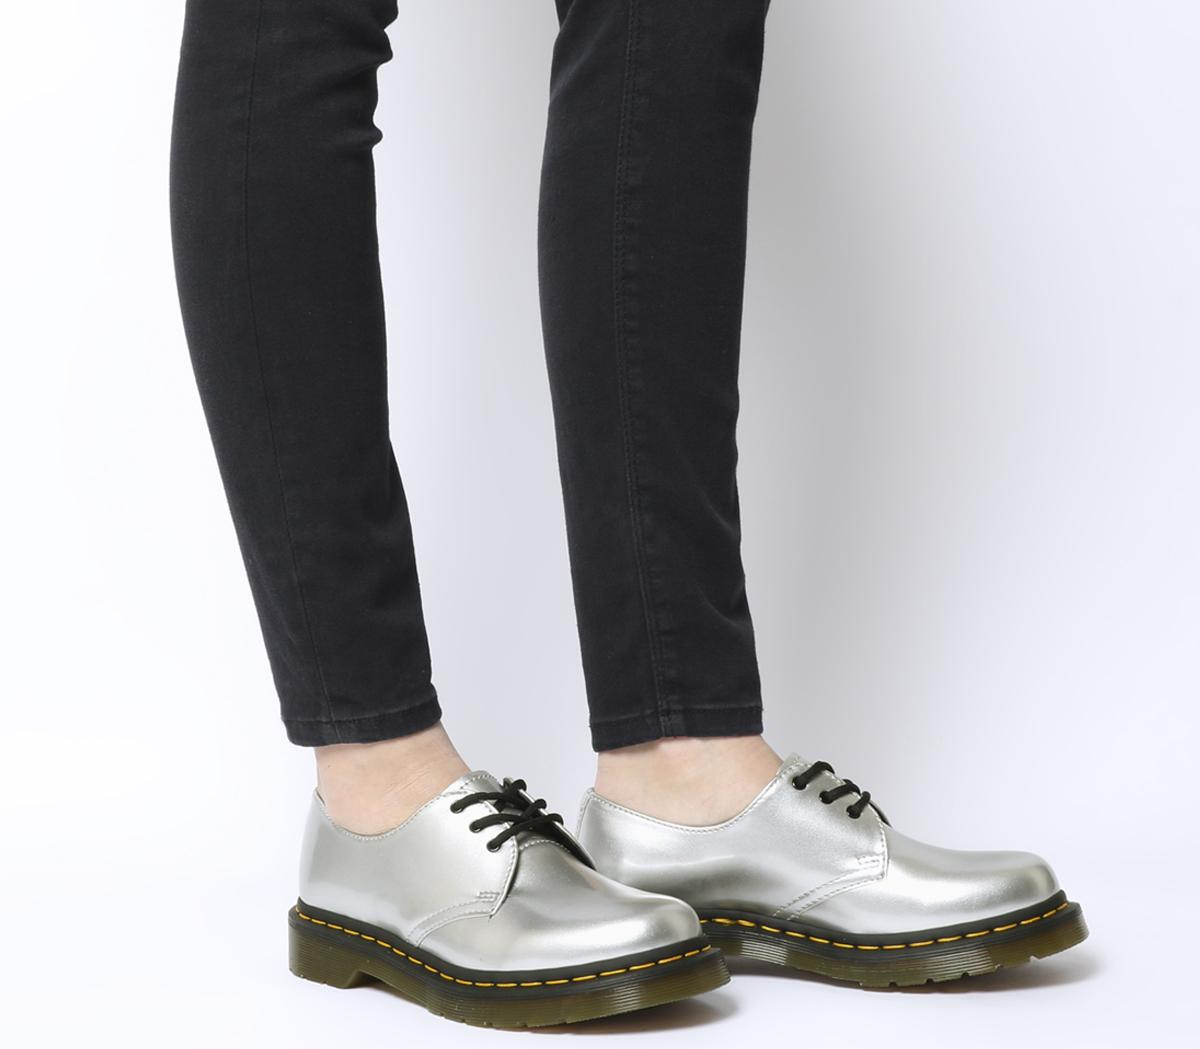 DR MARTENS 1461 Chrome vegan